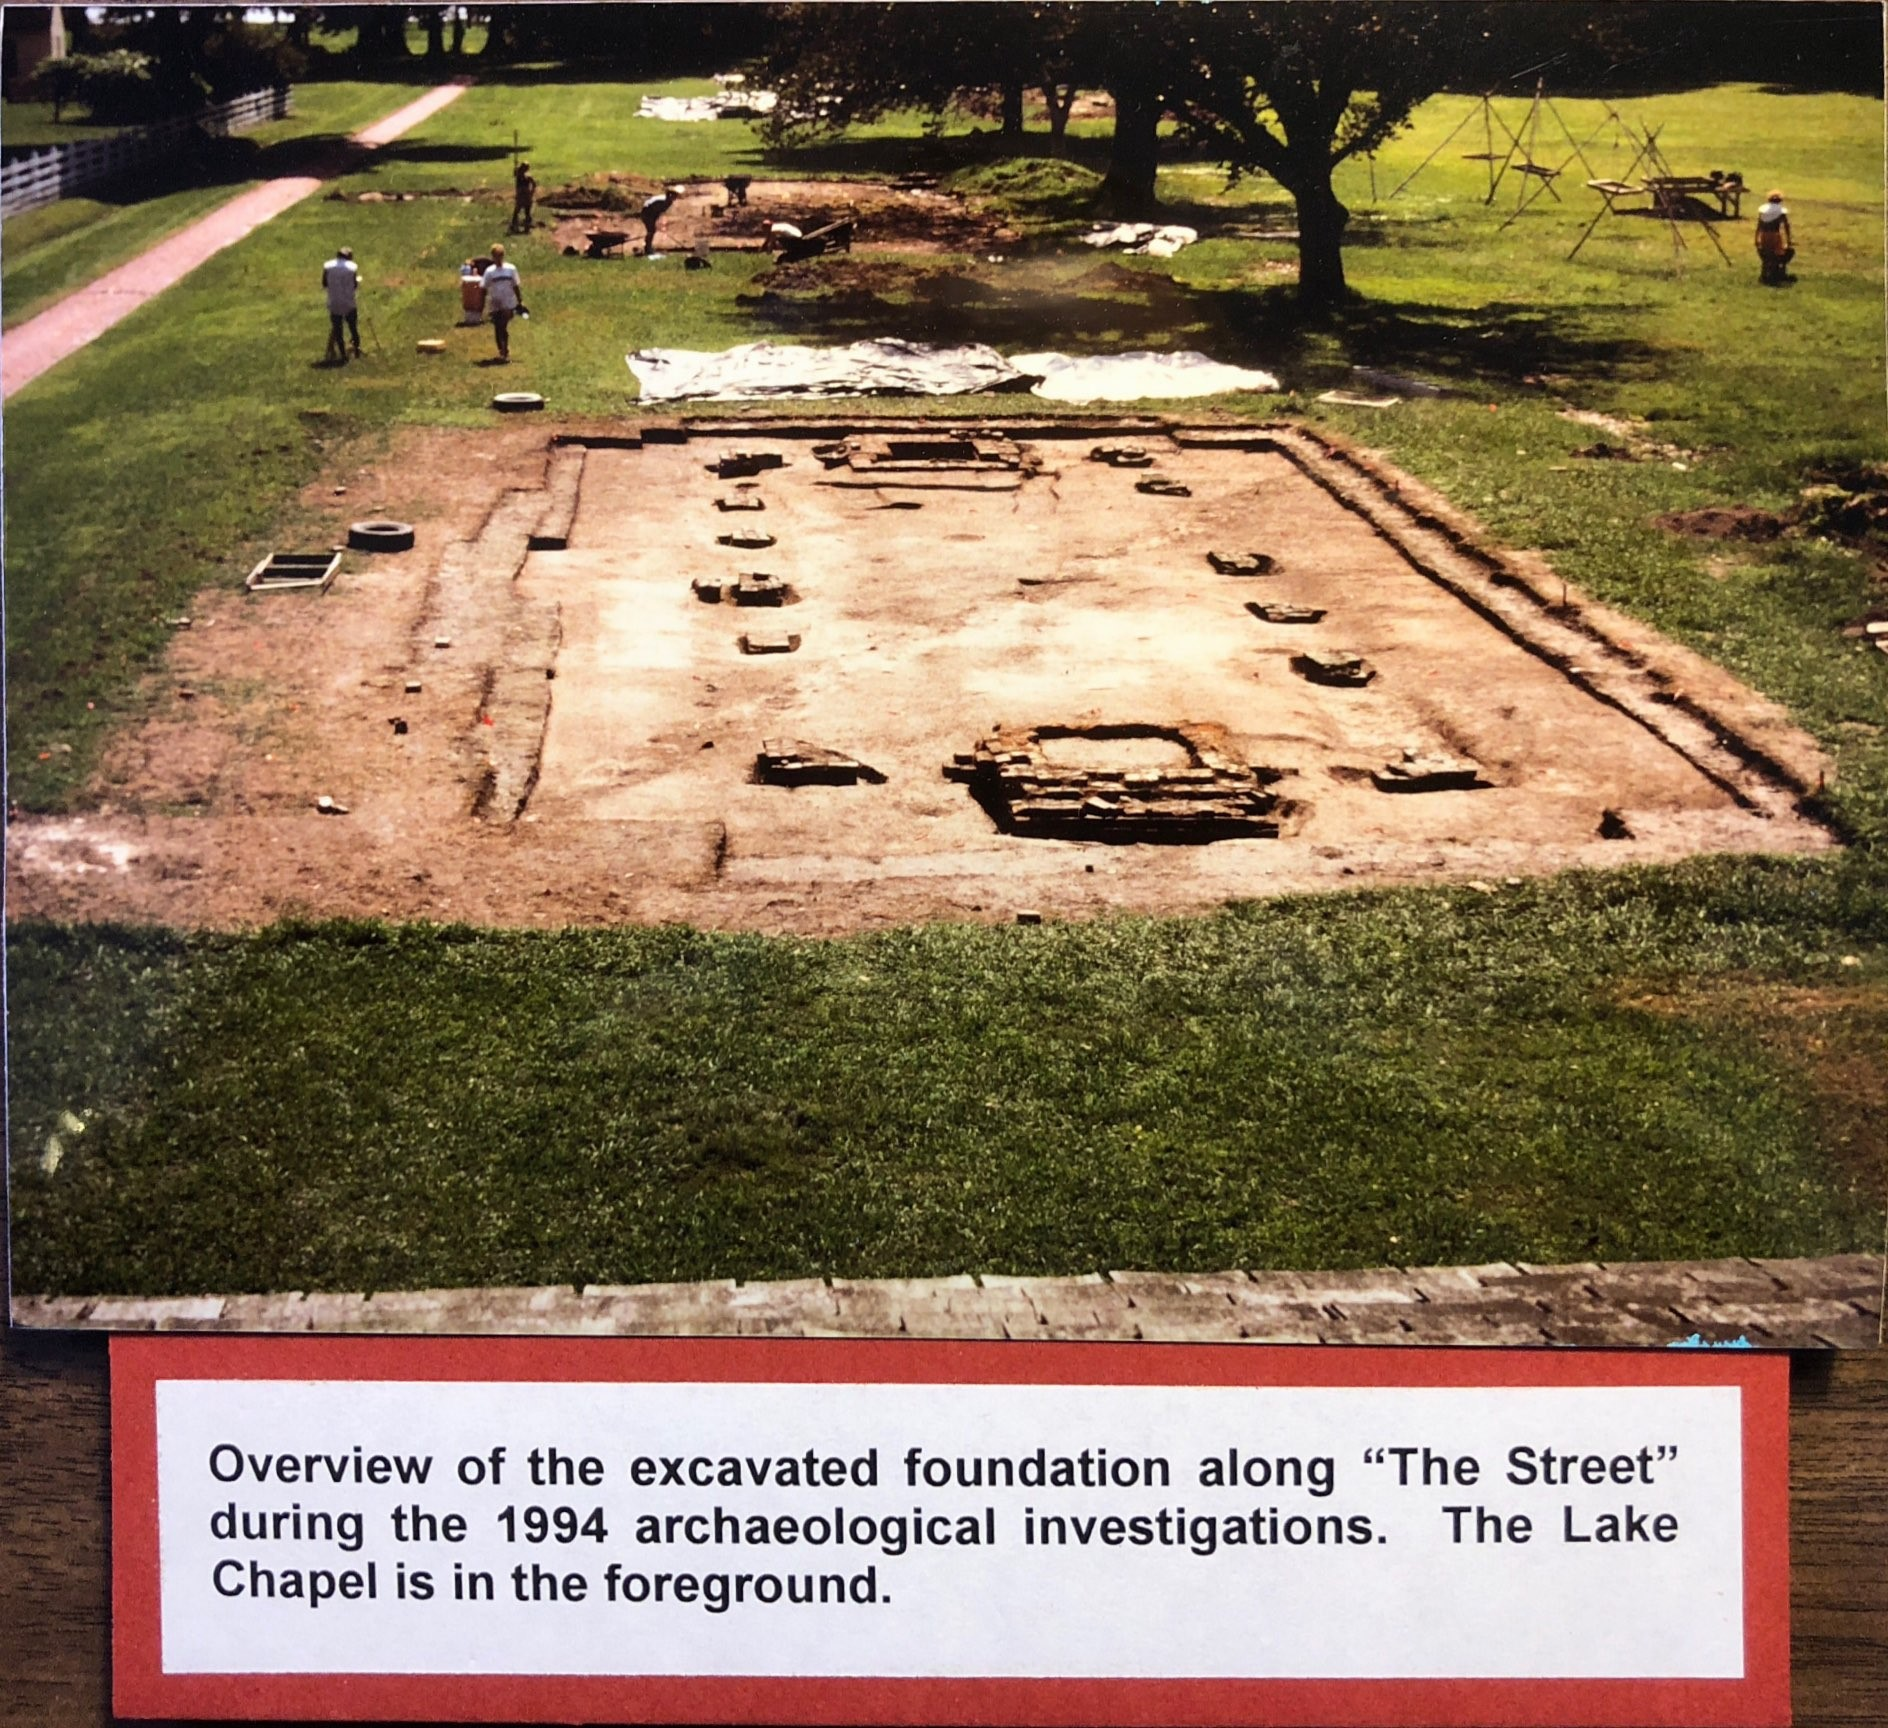 1994 archaeological excavation of the Lake Chapel in the foreground.